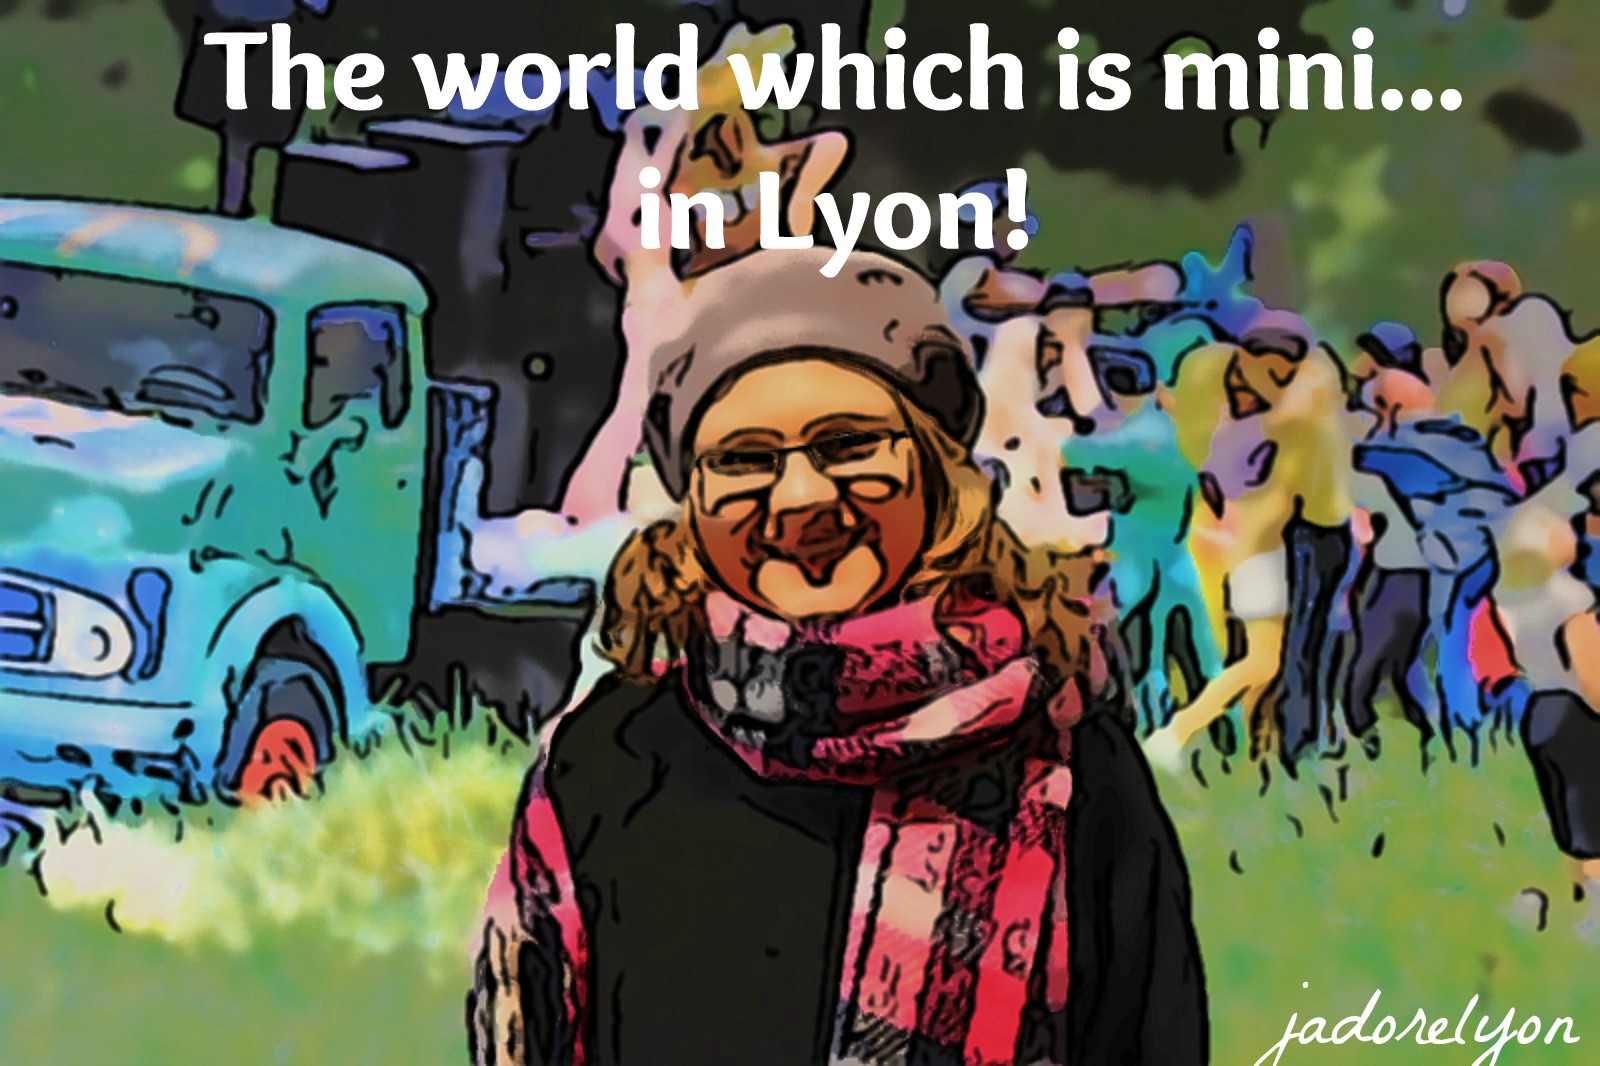 The world which is mini in lyon